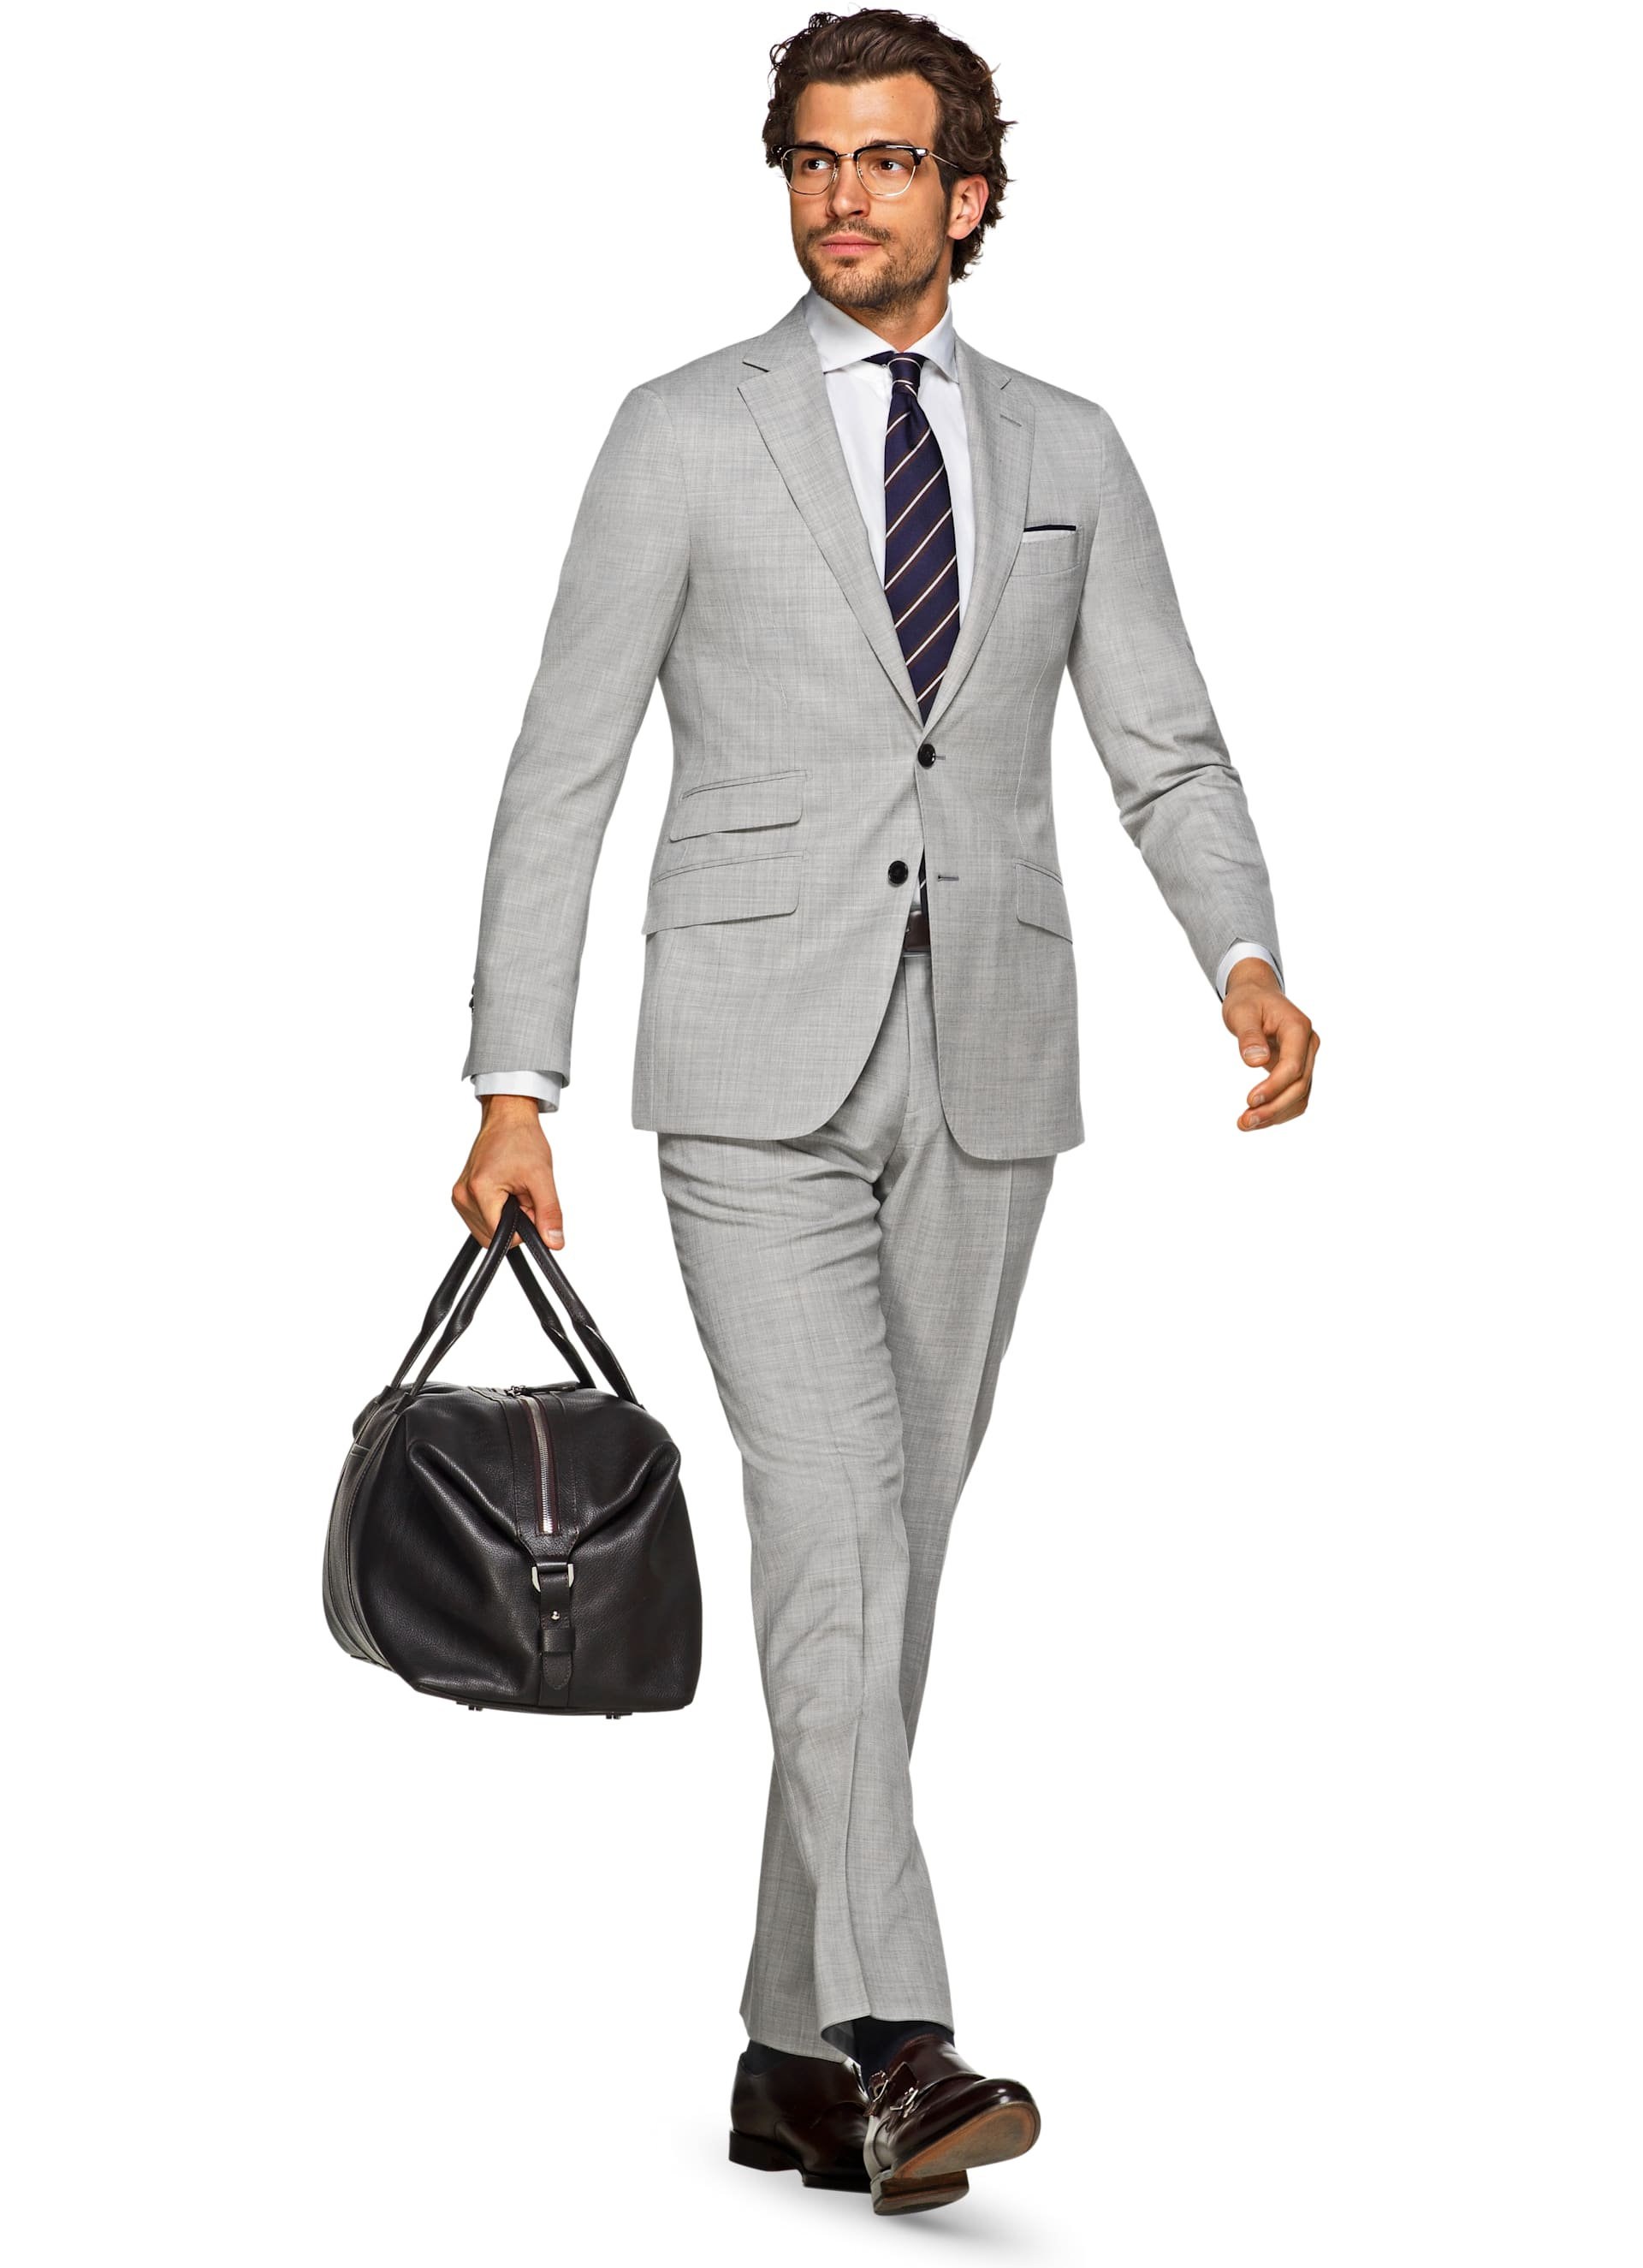 suit toed style about gray is oxford this light blog tan shirt a shoes cap blue